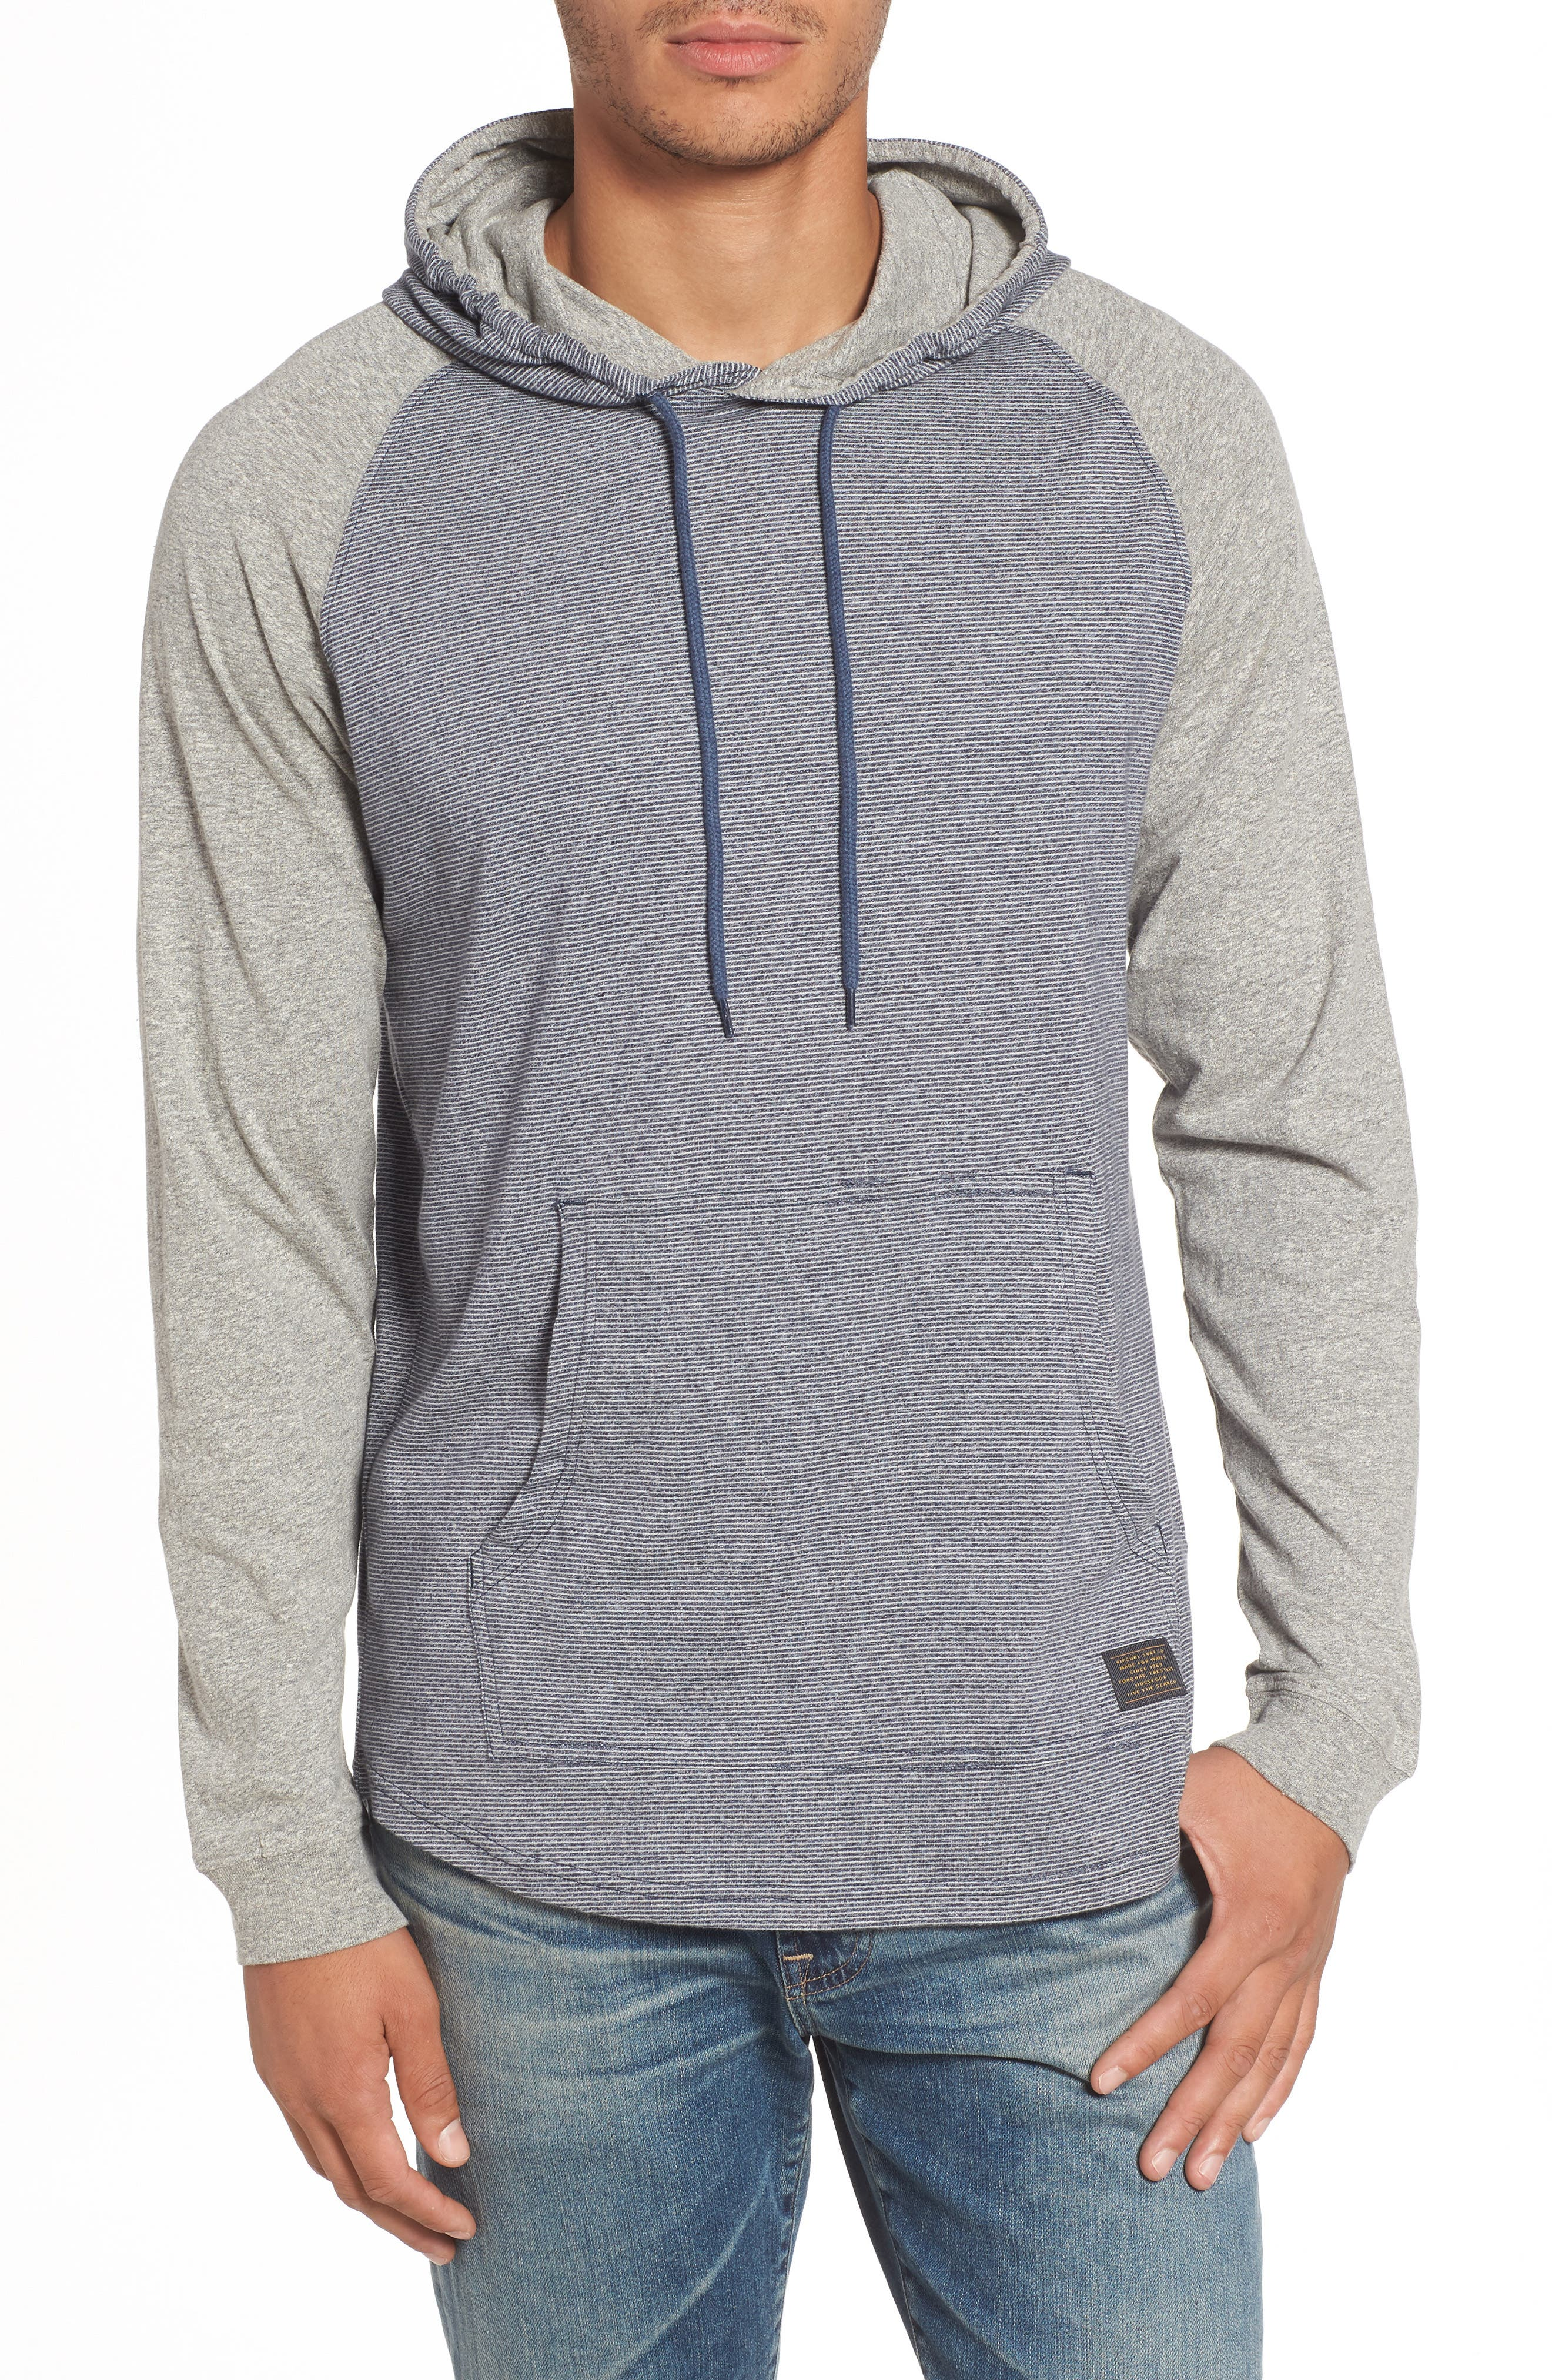 All In Hoodie,                             Main thumbnail 1, color,                             NAVY